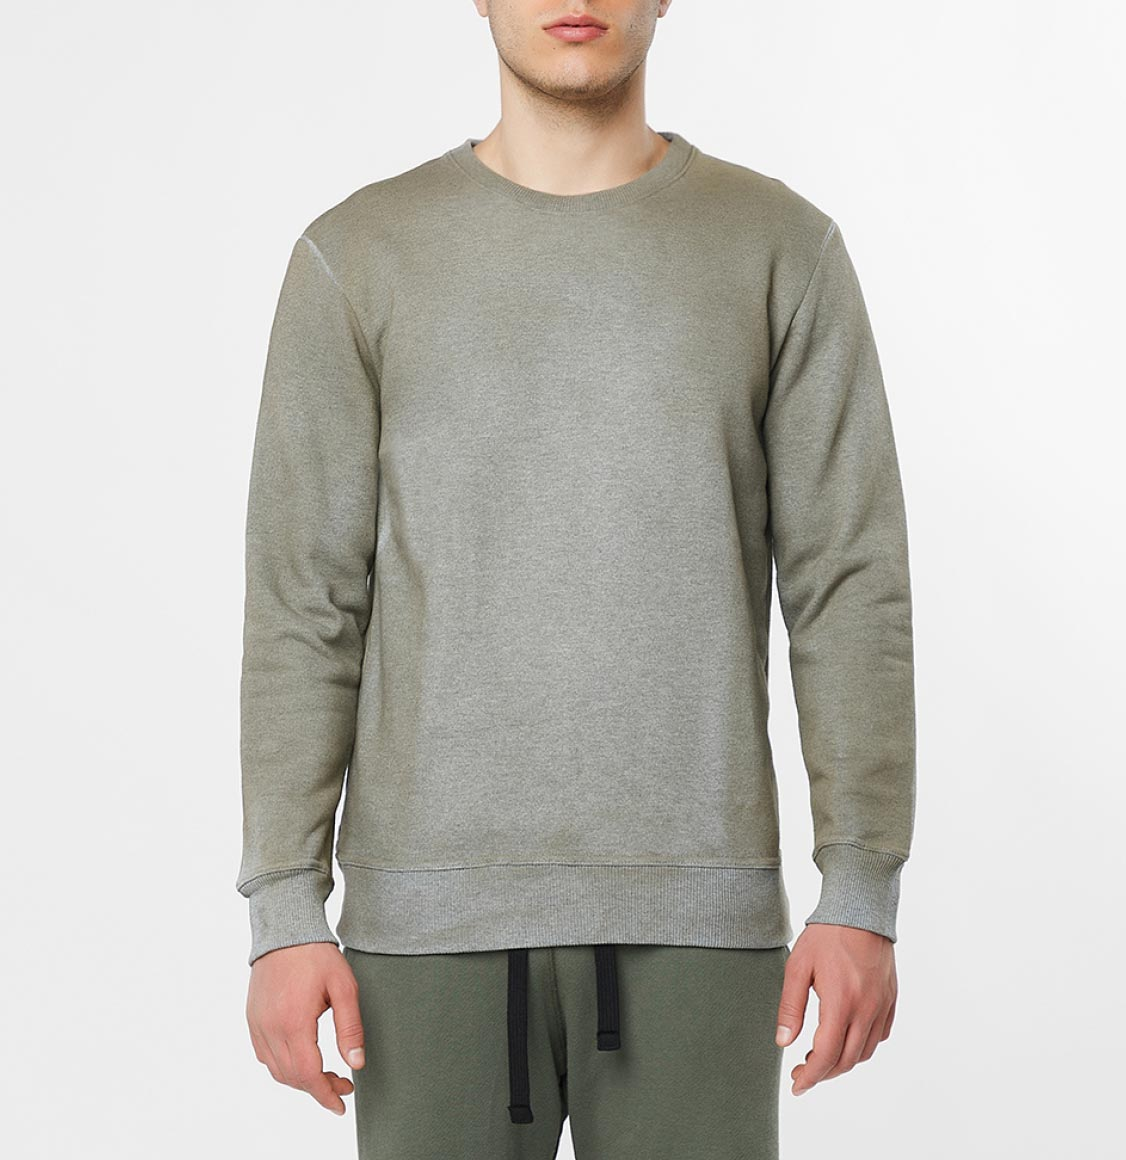 Acid Dye Organic Cotton Crew Neck Sweatshirt Melange Grey